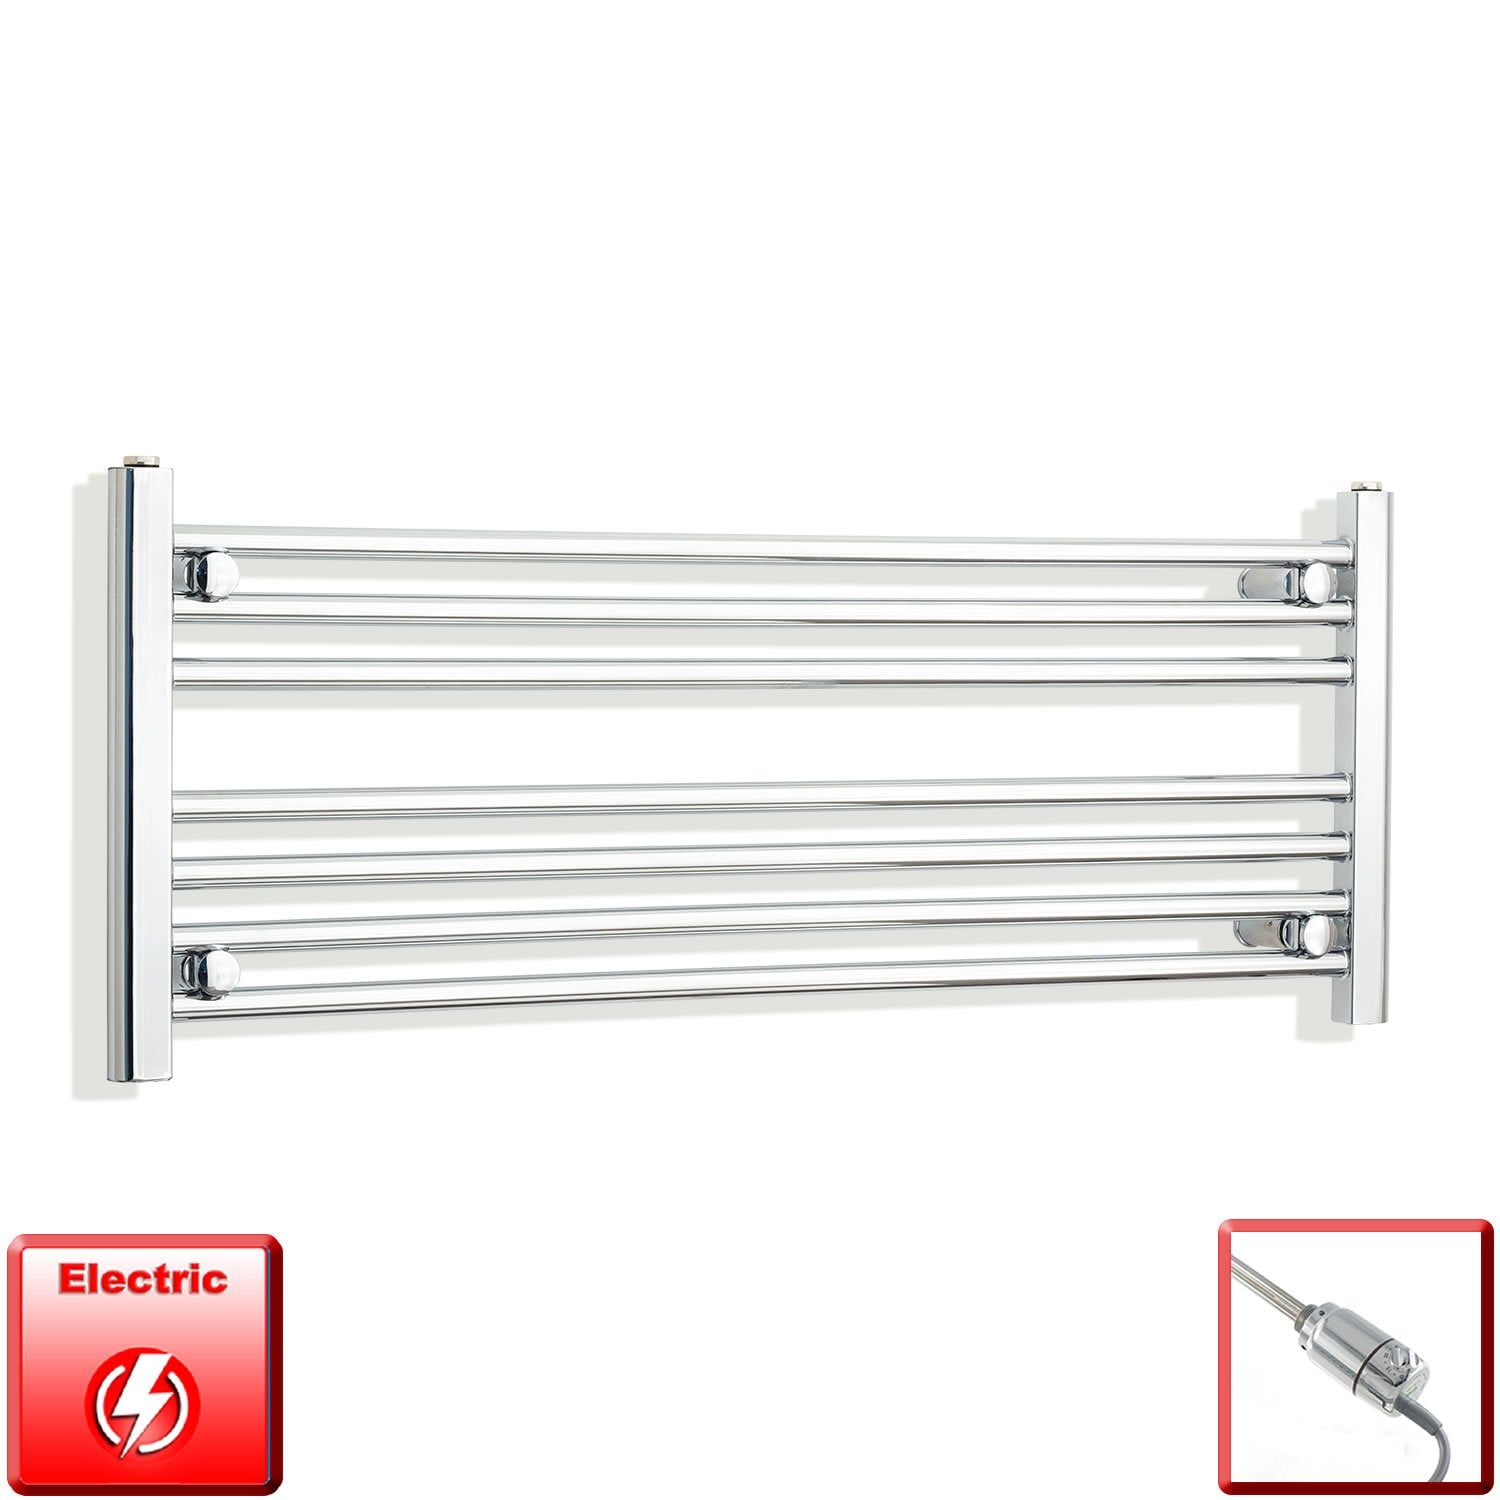 950mm Wide 400mm High Flat Chrome Pre-Filled Electric Heated Towel Rail Radiator HTR,GT Thermostatic